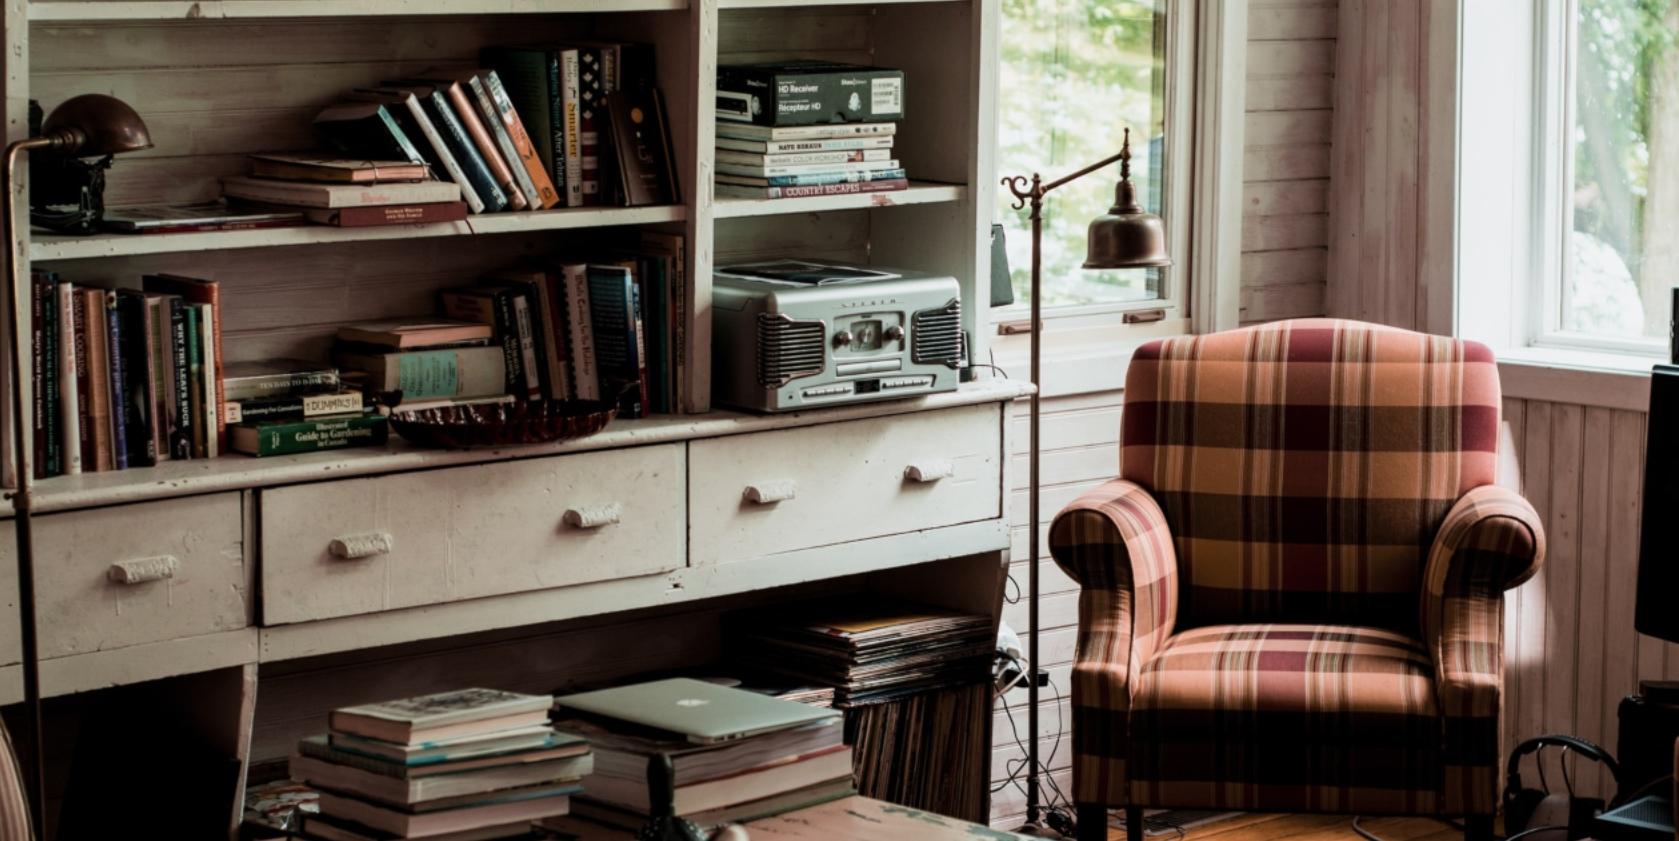 An armchair next to a lamp and bookshelves filled by books and papers